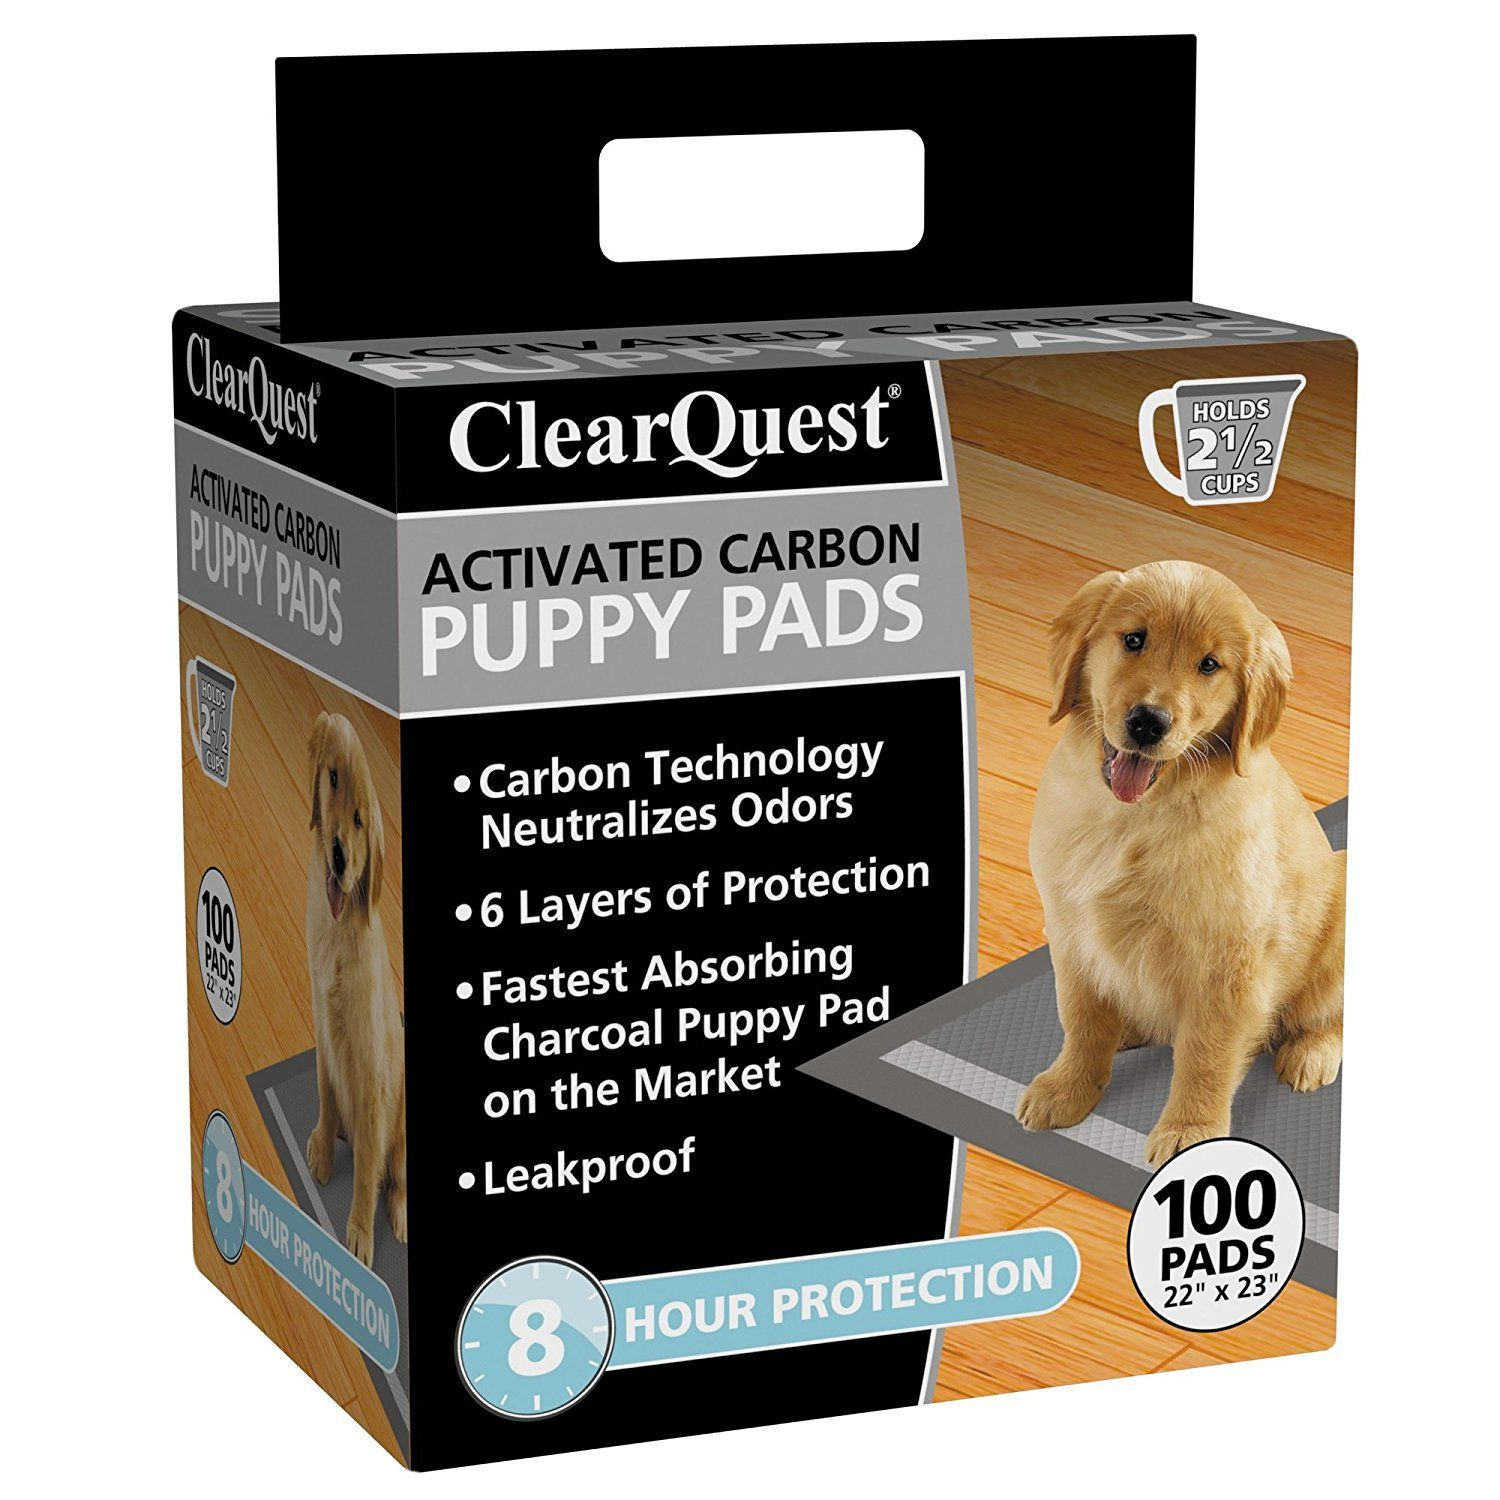 Clear Quest Charcoal Protective Puppy Pad Click On The Image